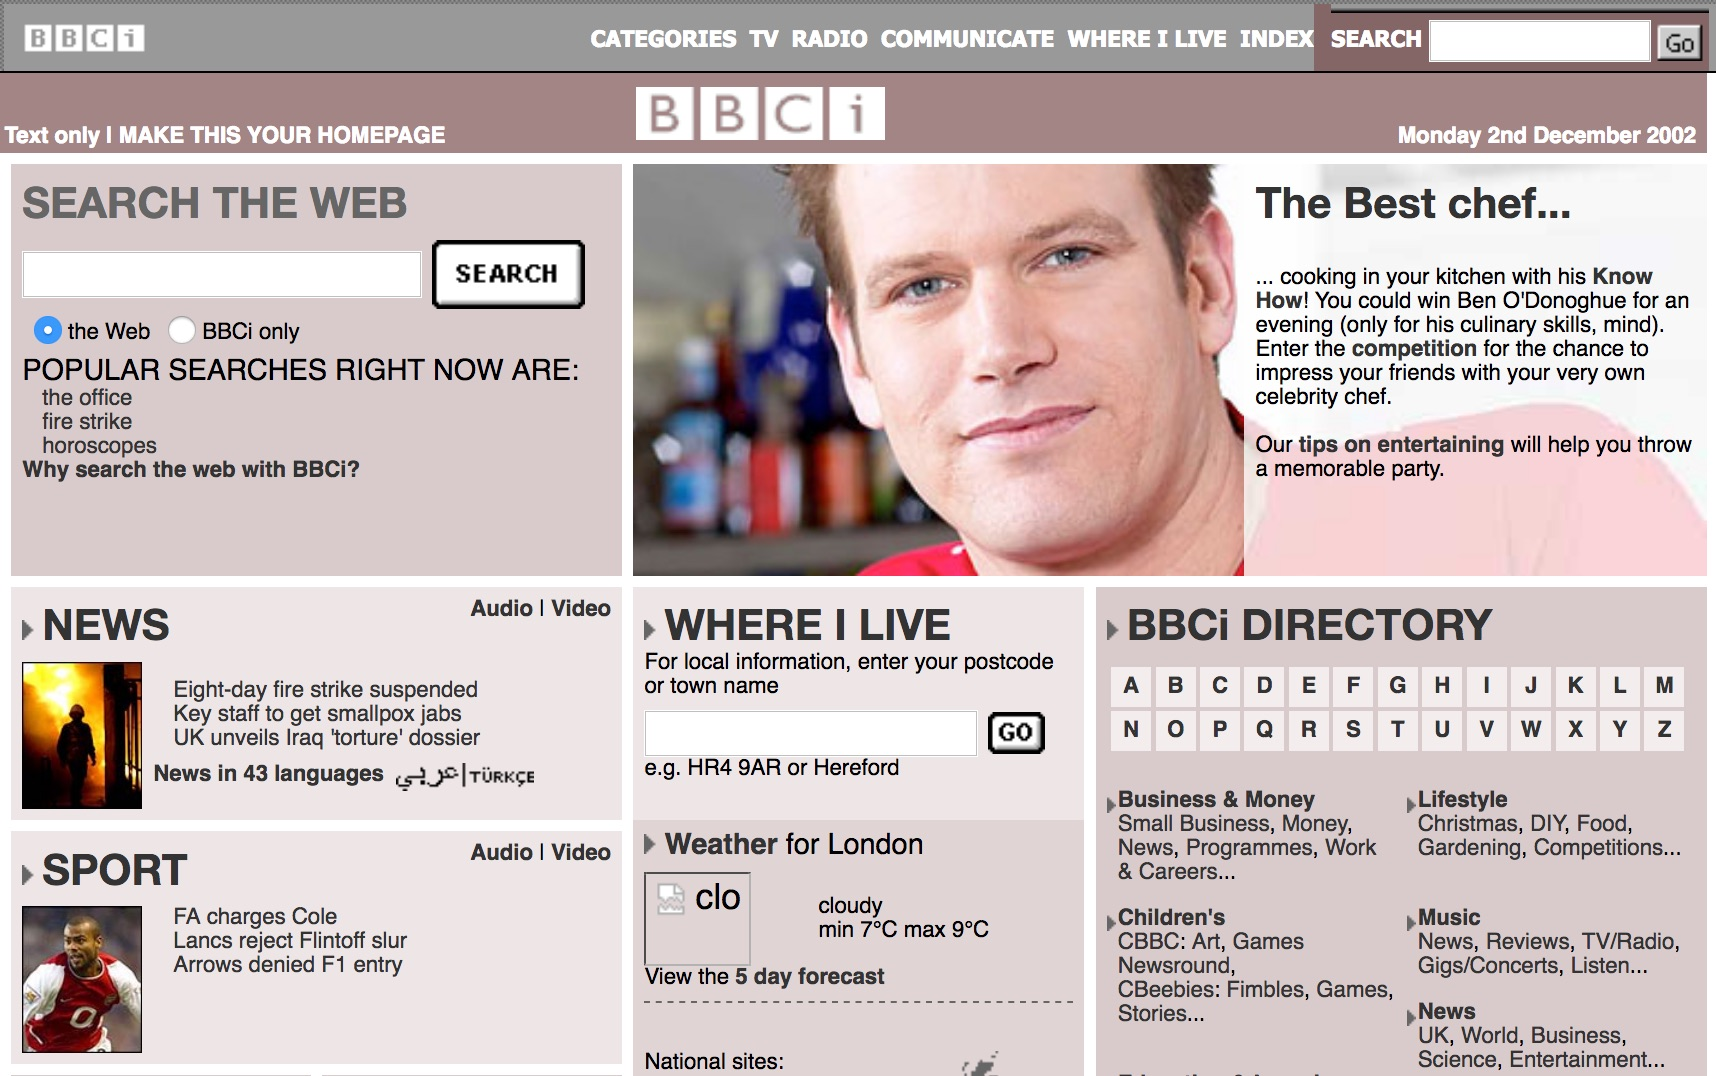 BBC.co.uk homepage (2002)